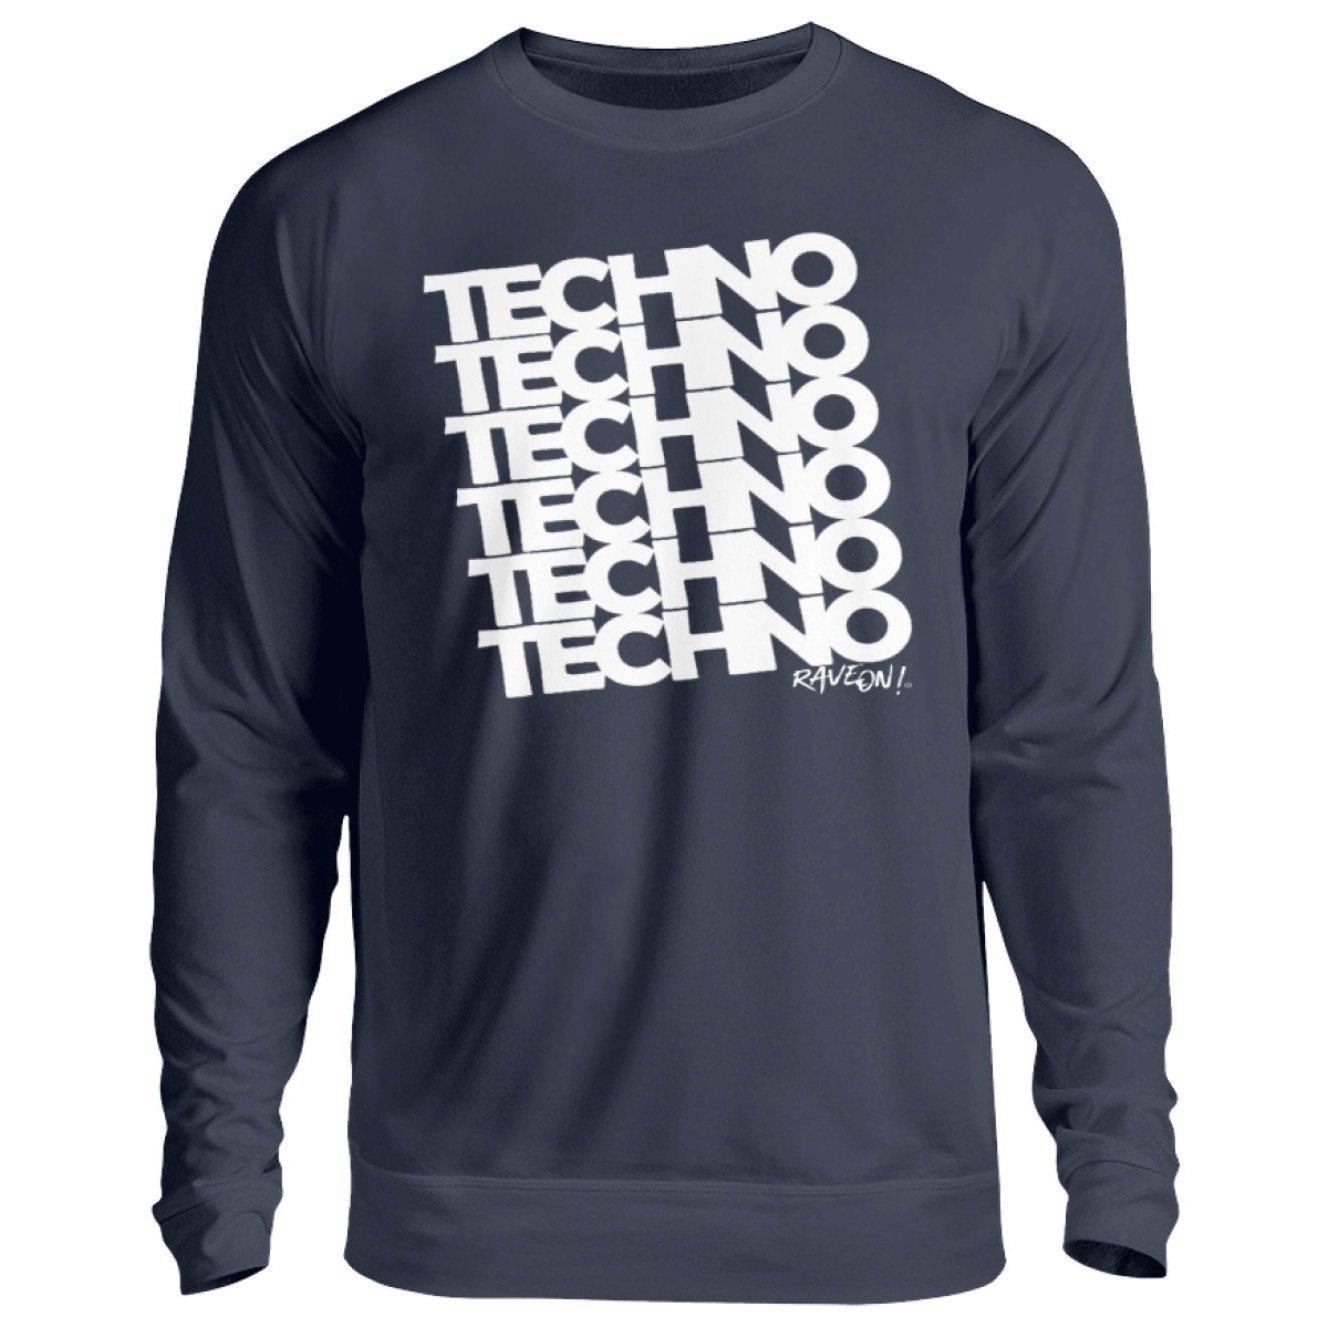 TECHNO 6 Rave ON!® T-Shirt - Unisex Pullover-Unisex Sweatshirt-Oxford Navy-S-Rave-On! I www.rave-on.shop I Deine Rave & Techno Szene Shop I apparel, bopullover, boyfriend pullover, boypullover, Design - TECHNO 6 Rave ON!® T-Shirt, Electro, house, on, On!®, pullover boy, pullover boyfriend, rave, rave apparel, rave clothing, rave gear, rave on, Rave On!®, rave wear, raver, techno, ® - Sexy Festival Streetwear , Clubwear & Raver Style